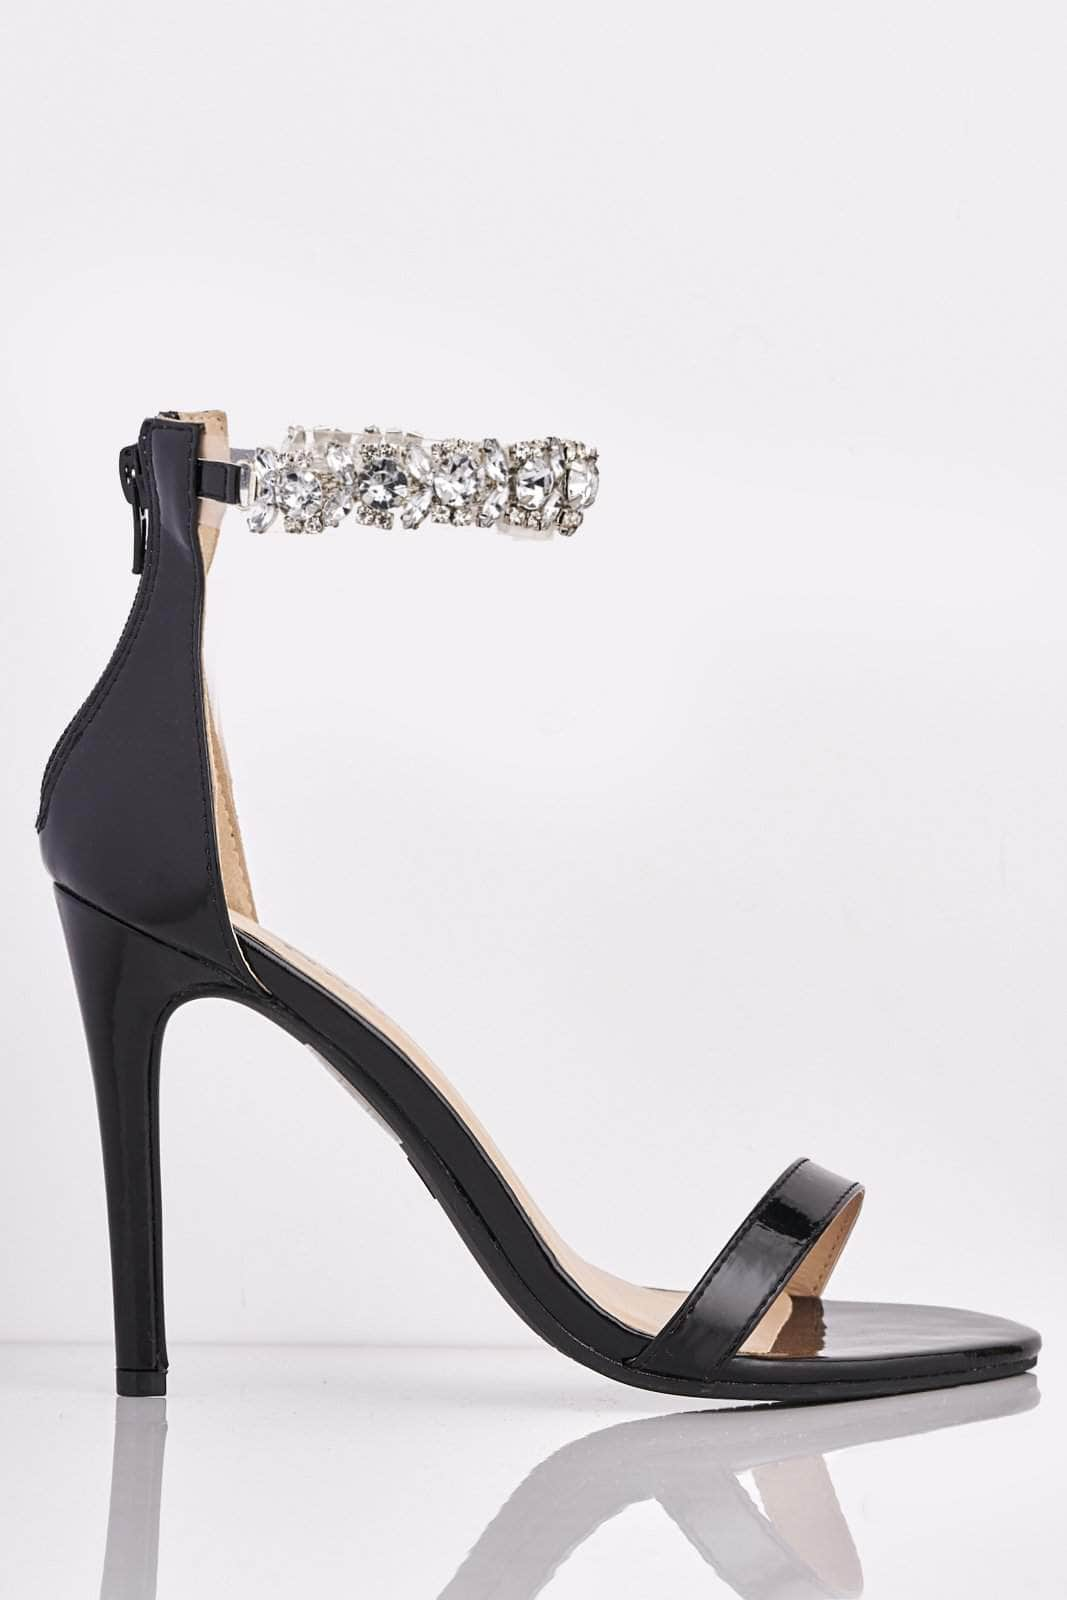 Black Patent Heels with Diamante Embellished Strap